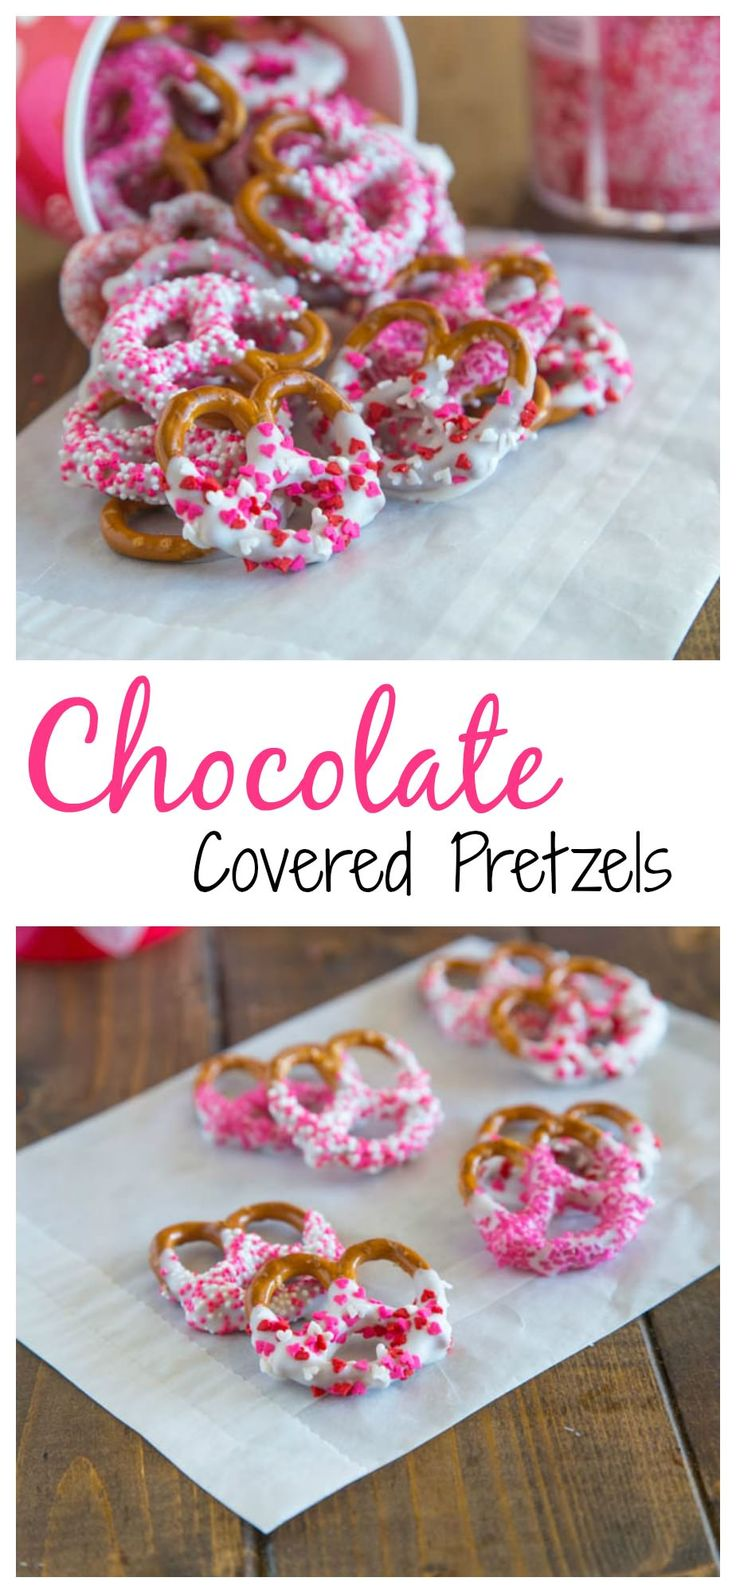 Best 25+ White chocolate covered pretzels ideas on Pinterest ...